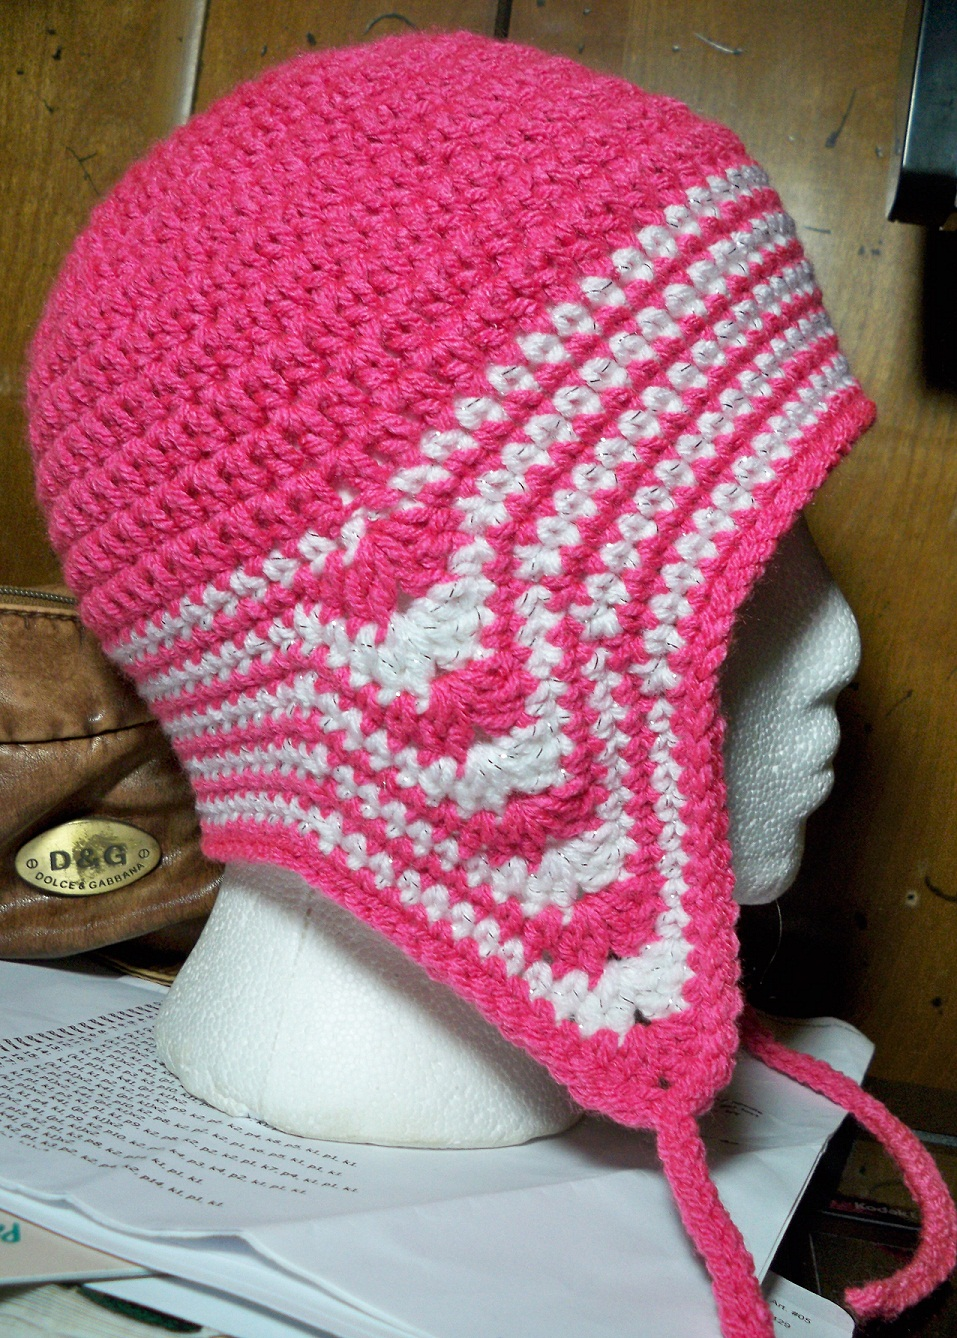 Easy Crochet Hat Pattern With Ear Flaps : JR Crochet Designs: 2 New Designs just in time for Christmas